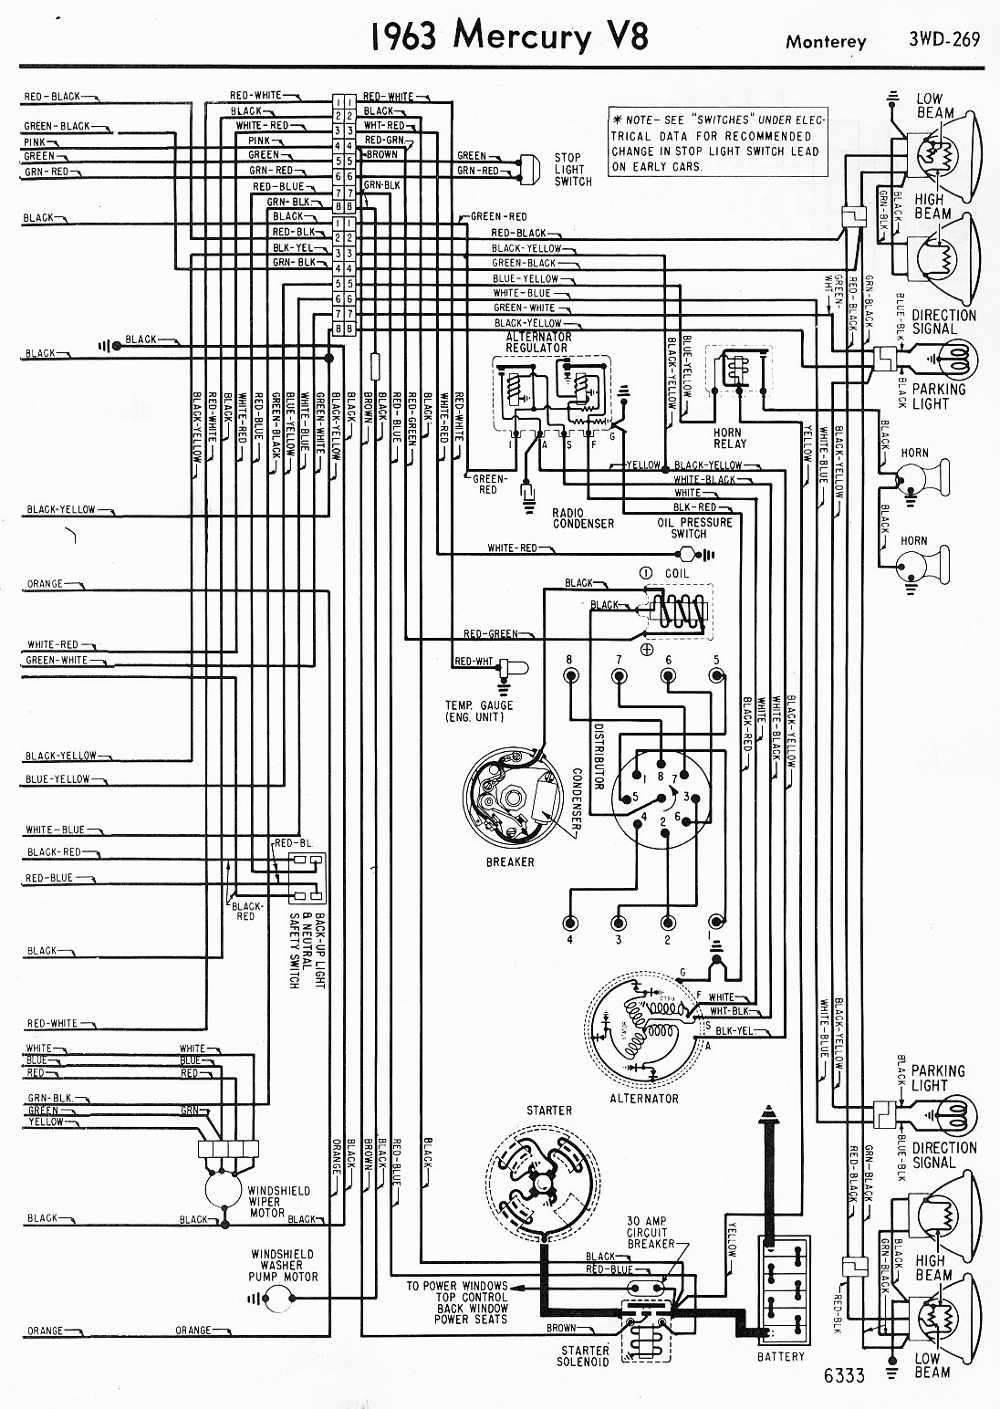 wiring diagram 17 95 choose options compare 1953 desoto color wiring1956 mercury wiring diagram wiring diagram [ 1000 x 1409 Pixel ]